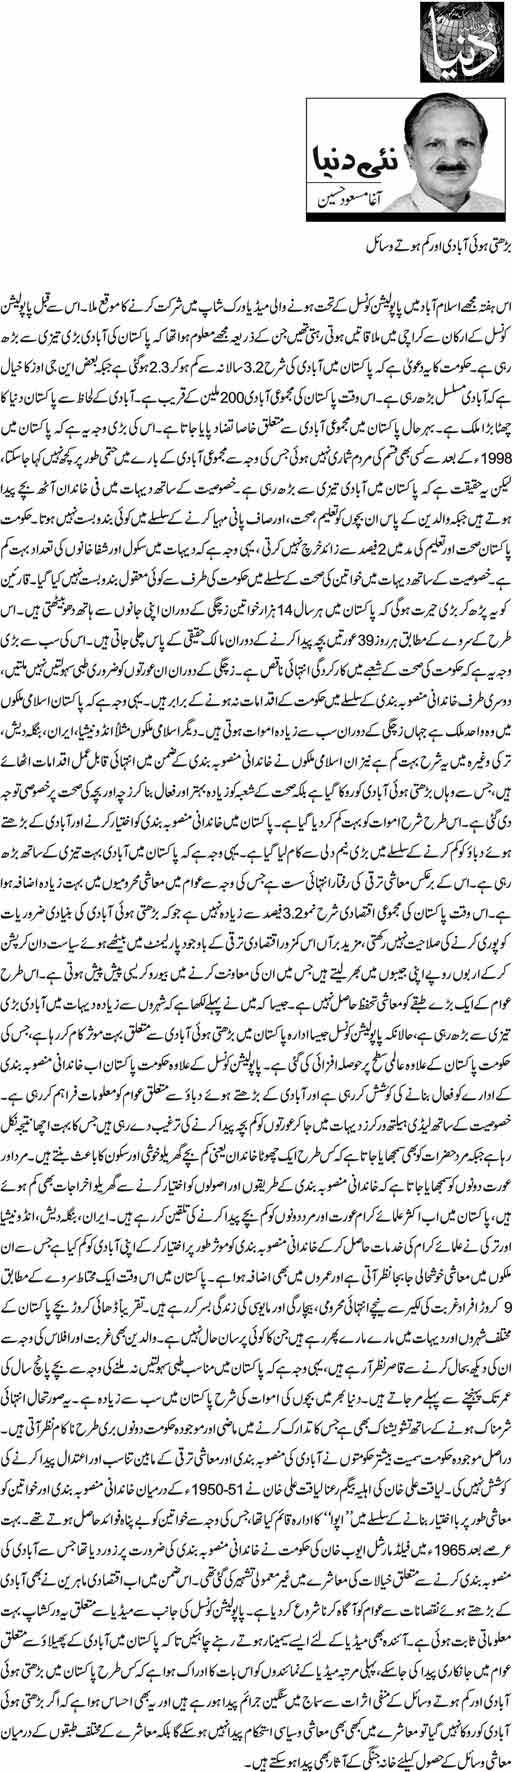 essay on traffic problems in pakistan